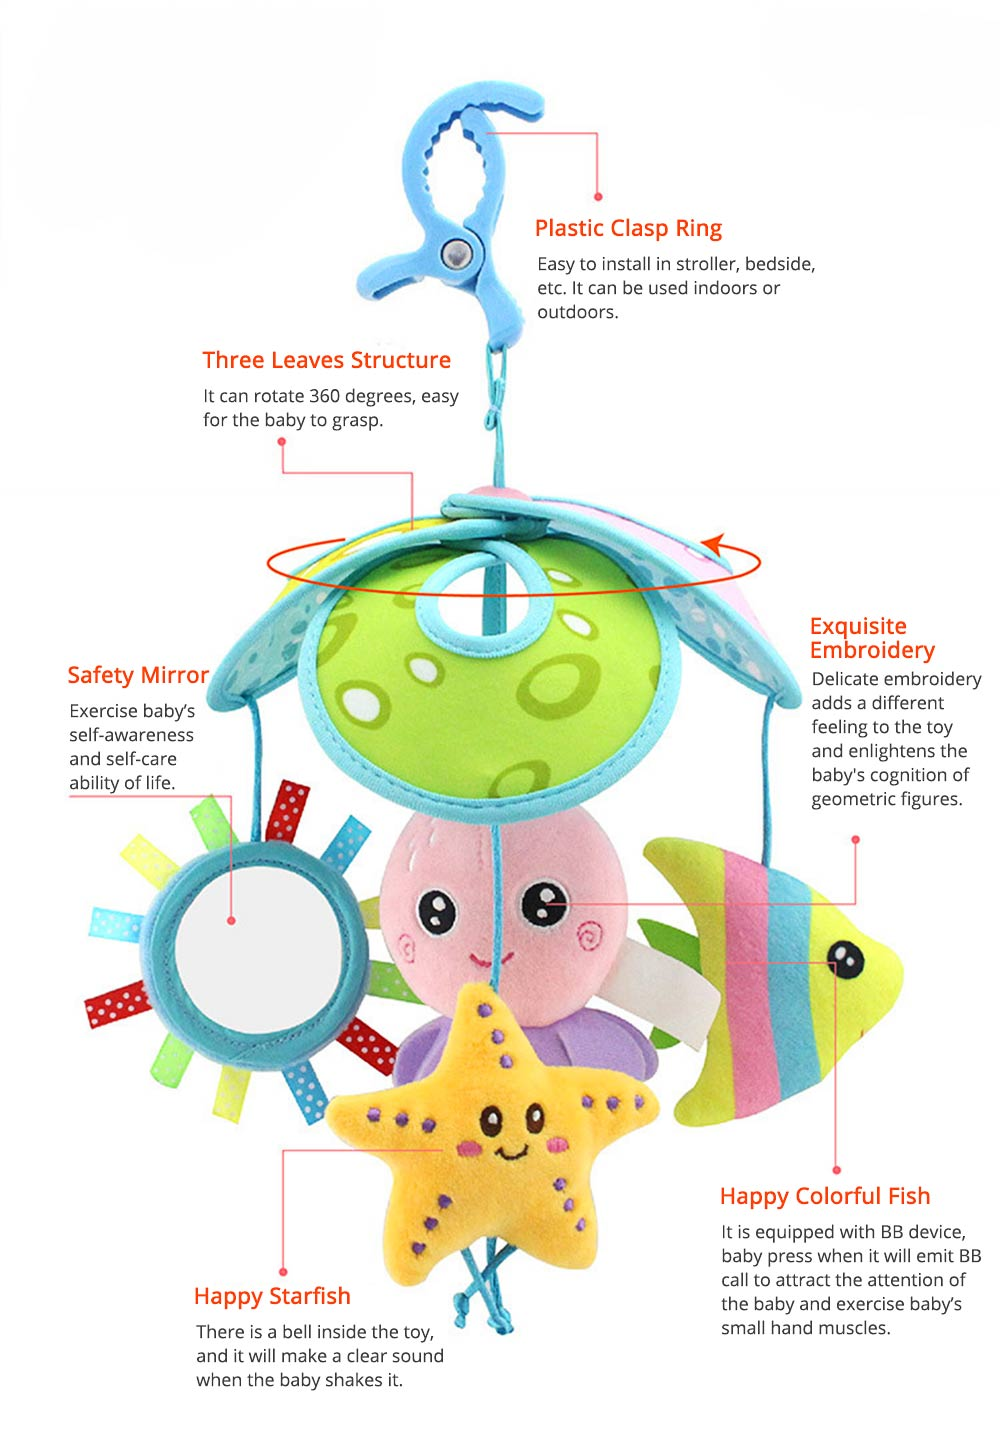 Cute Carton Forest Ocean Animal Series Baby Mobiles, Pacification Toy Wind Bell with Three Leaves Rotation Design for Infants 5